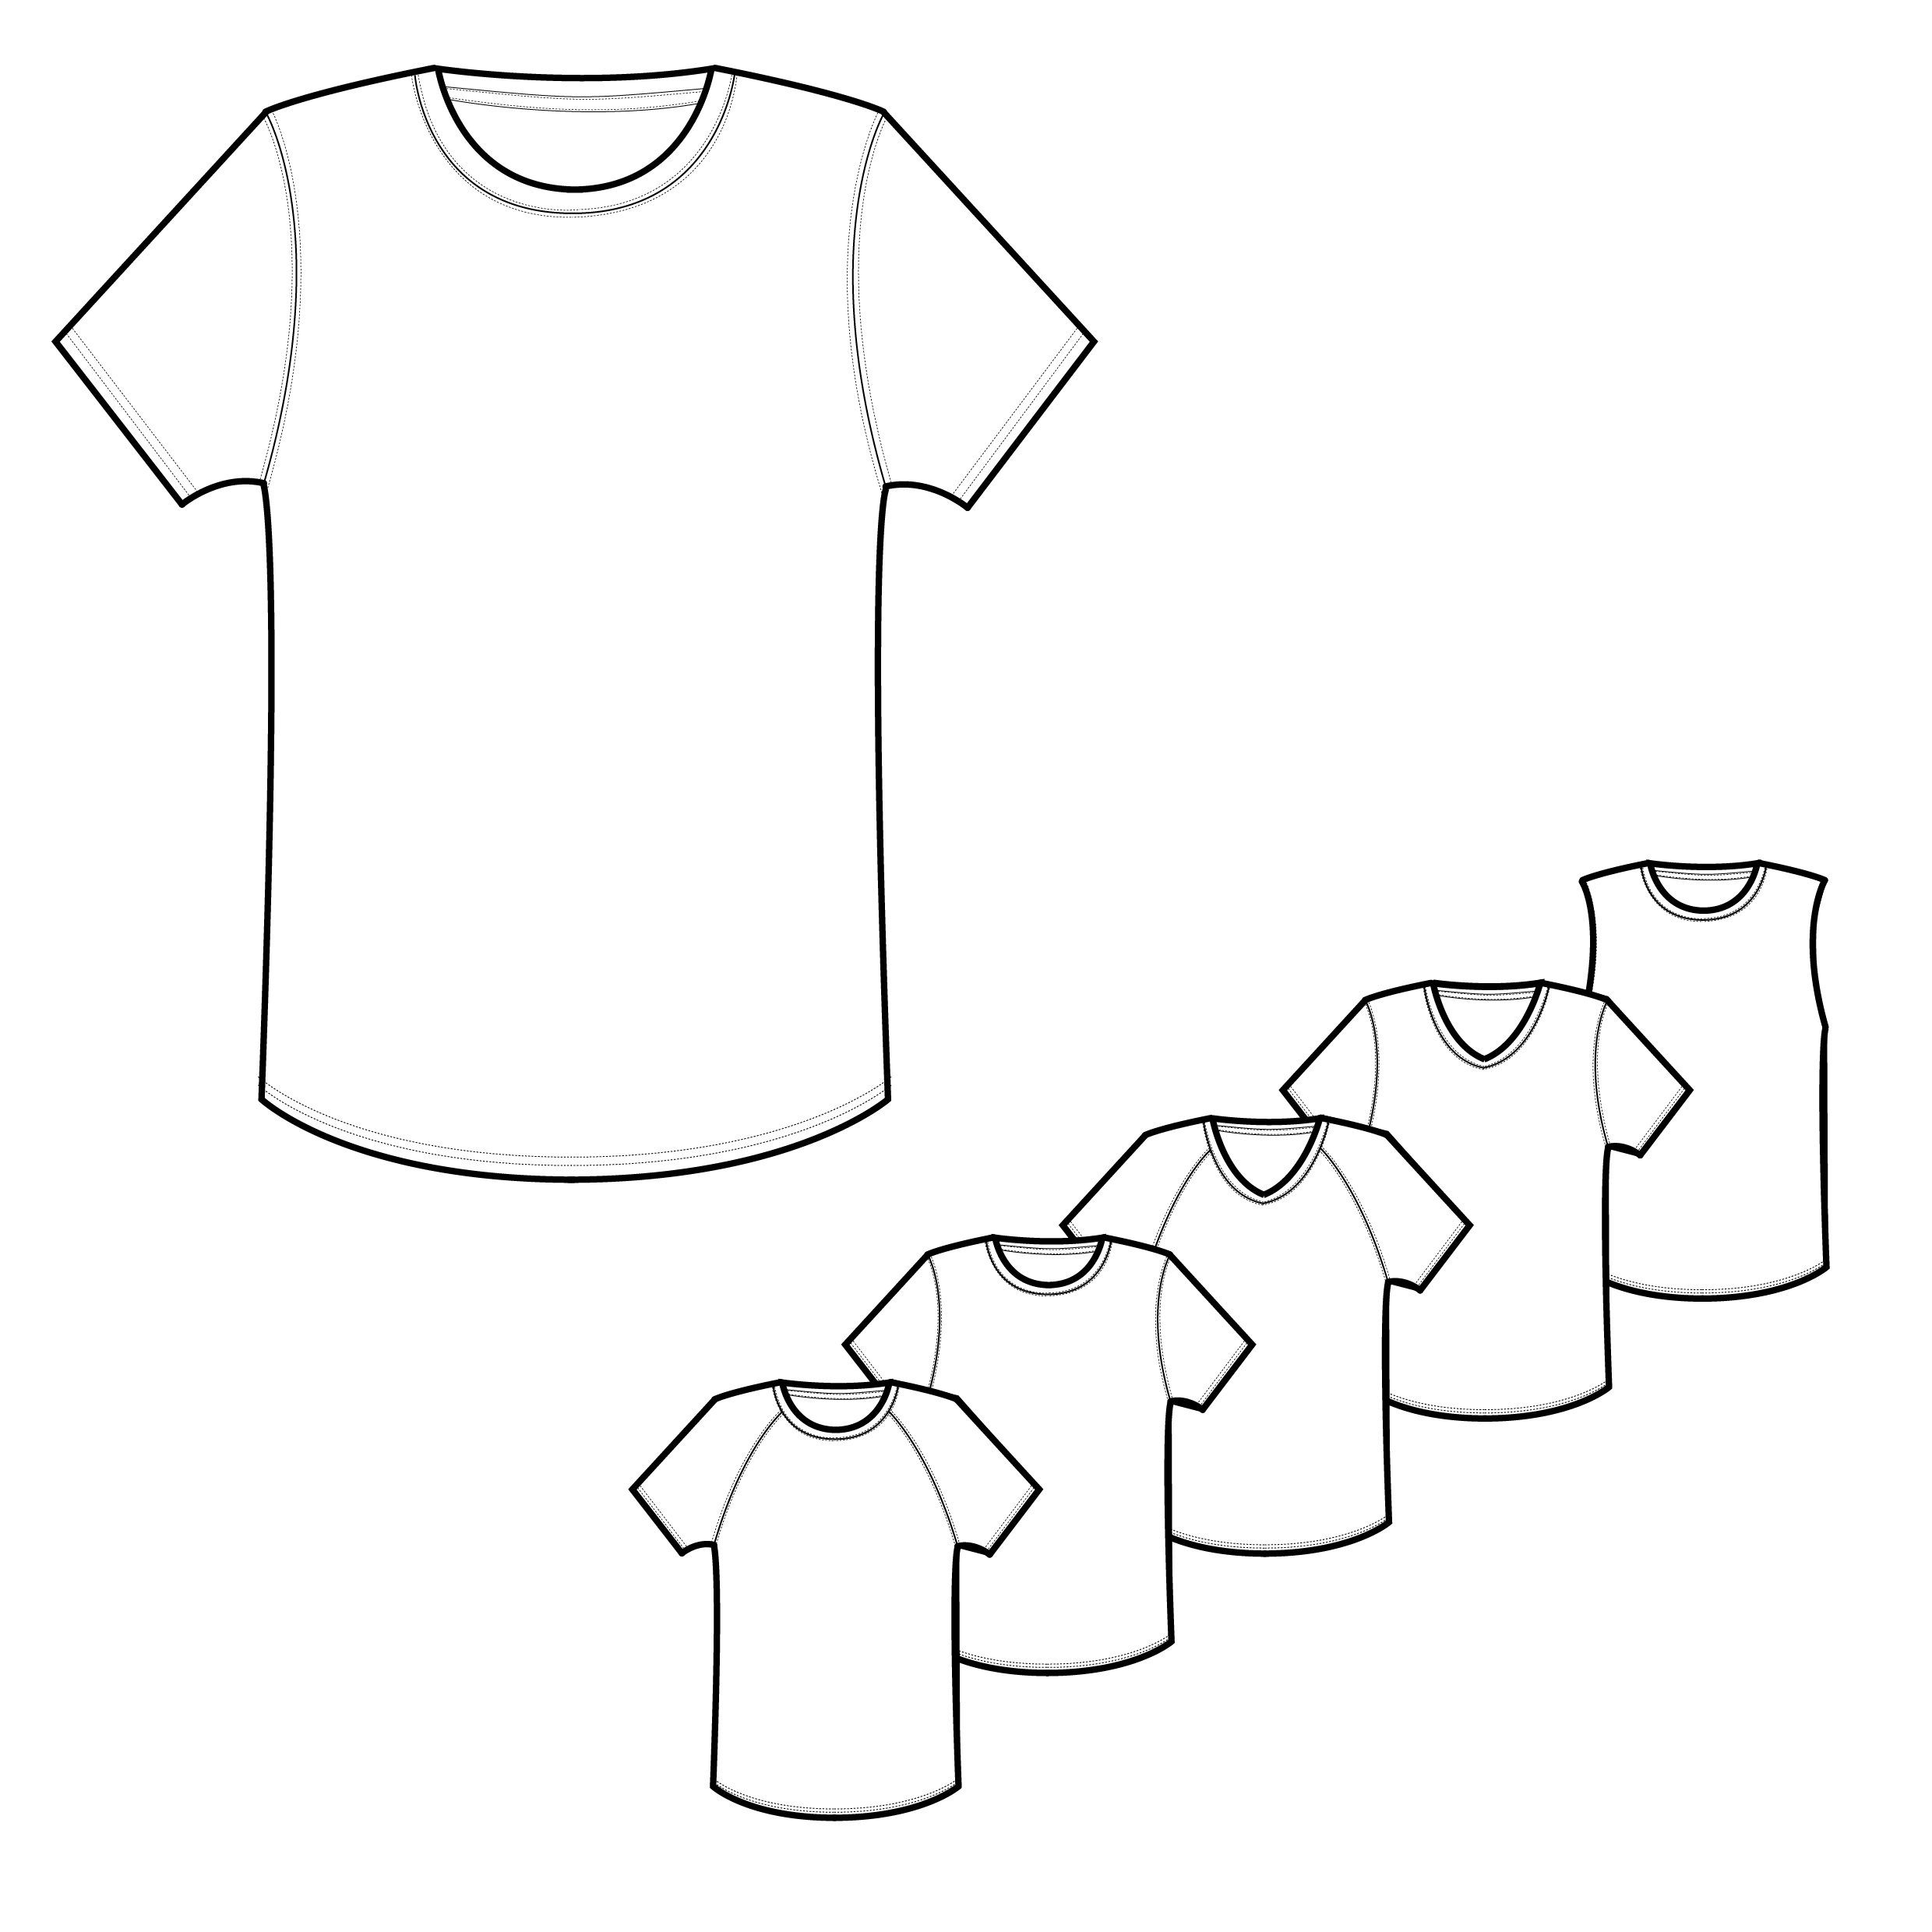 T Shirt Drawing at GetDrawings.com | Free for personal use ...